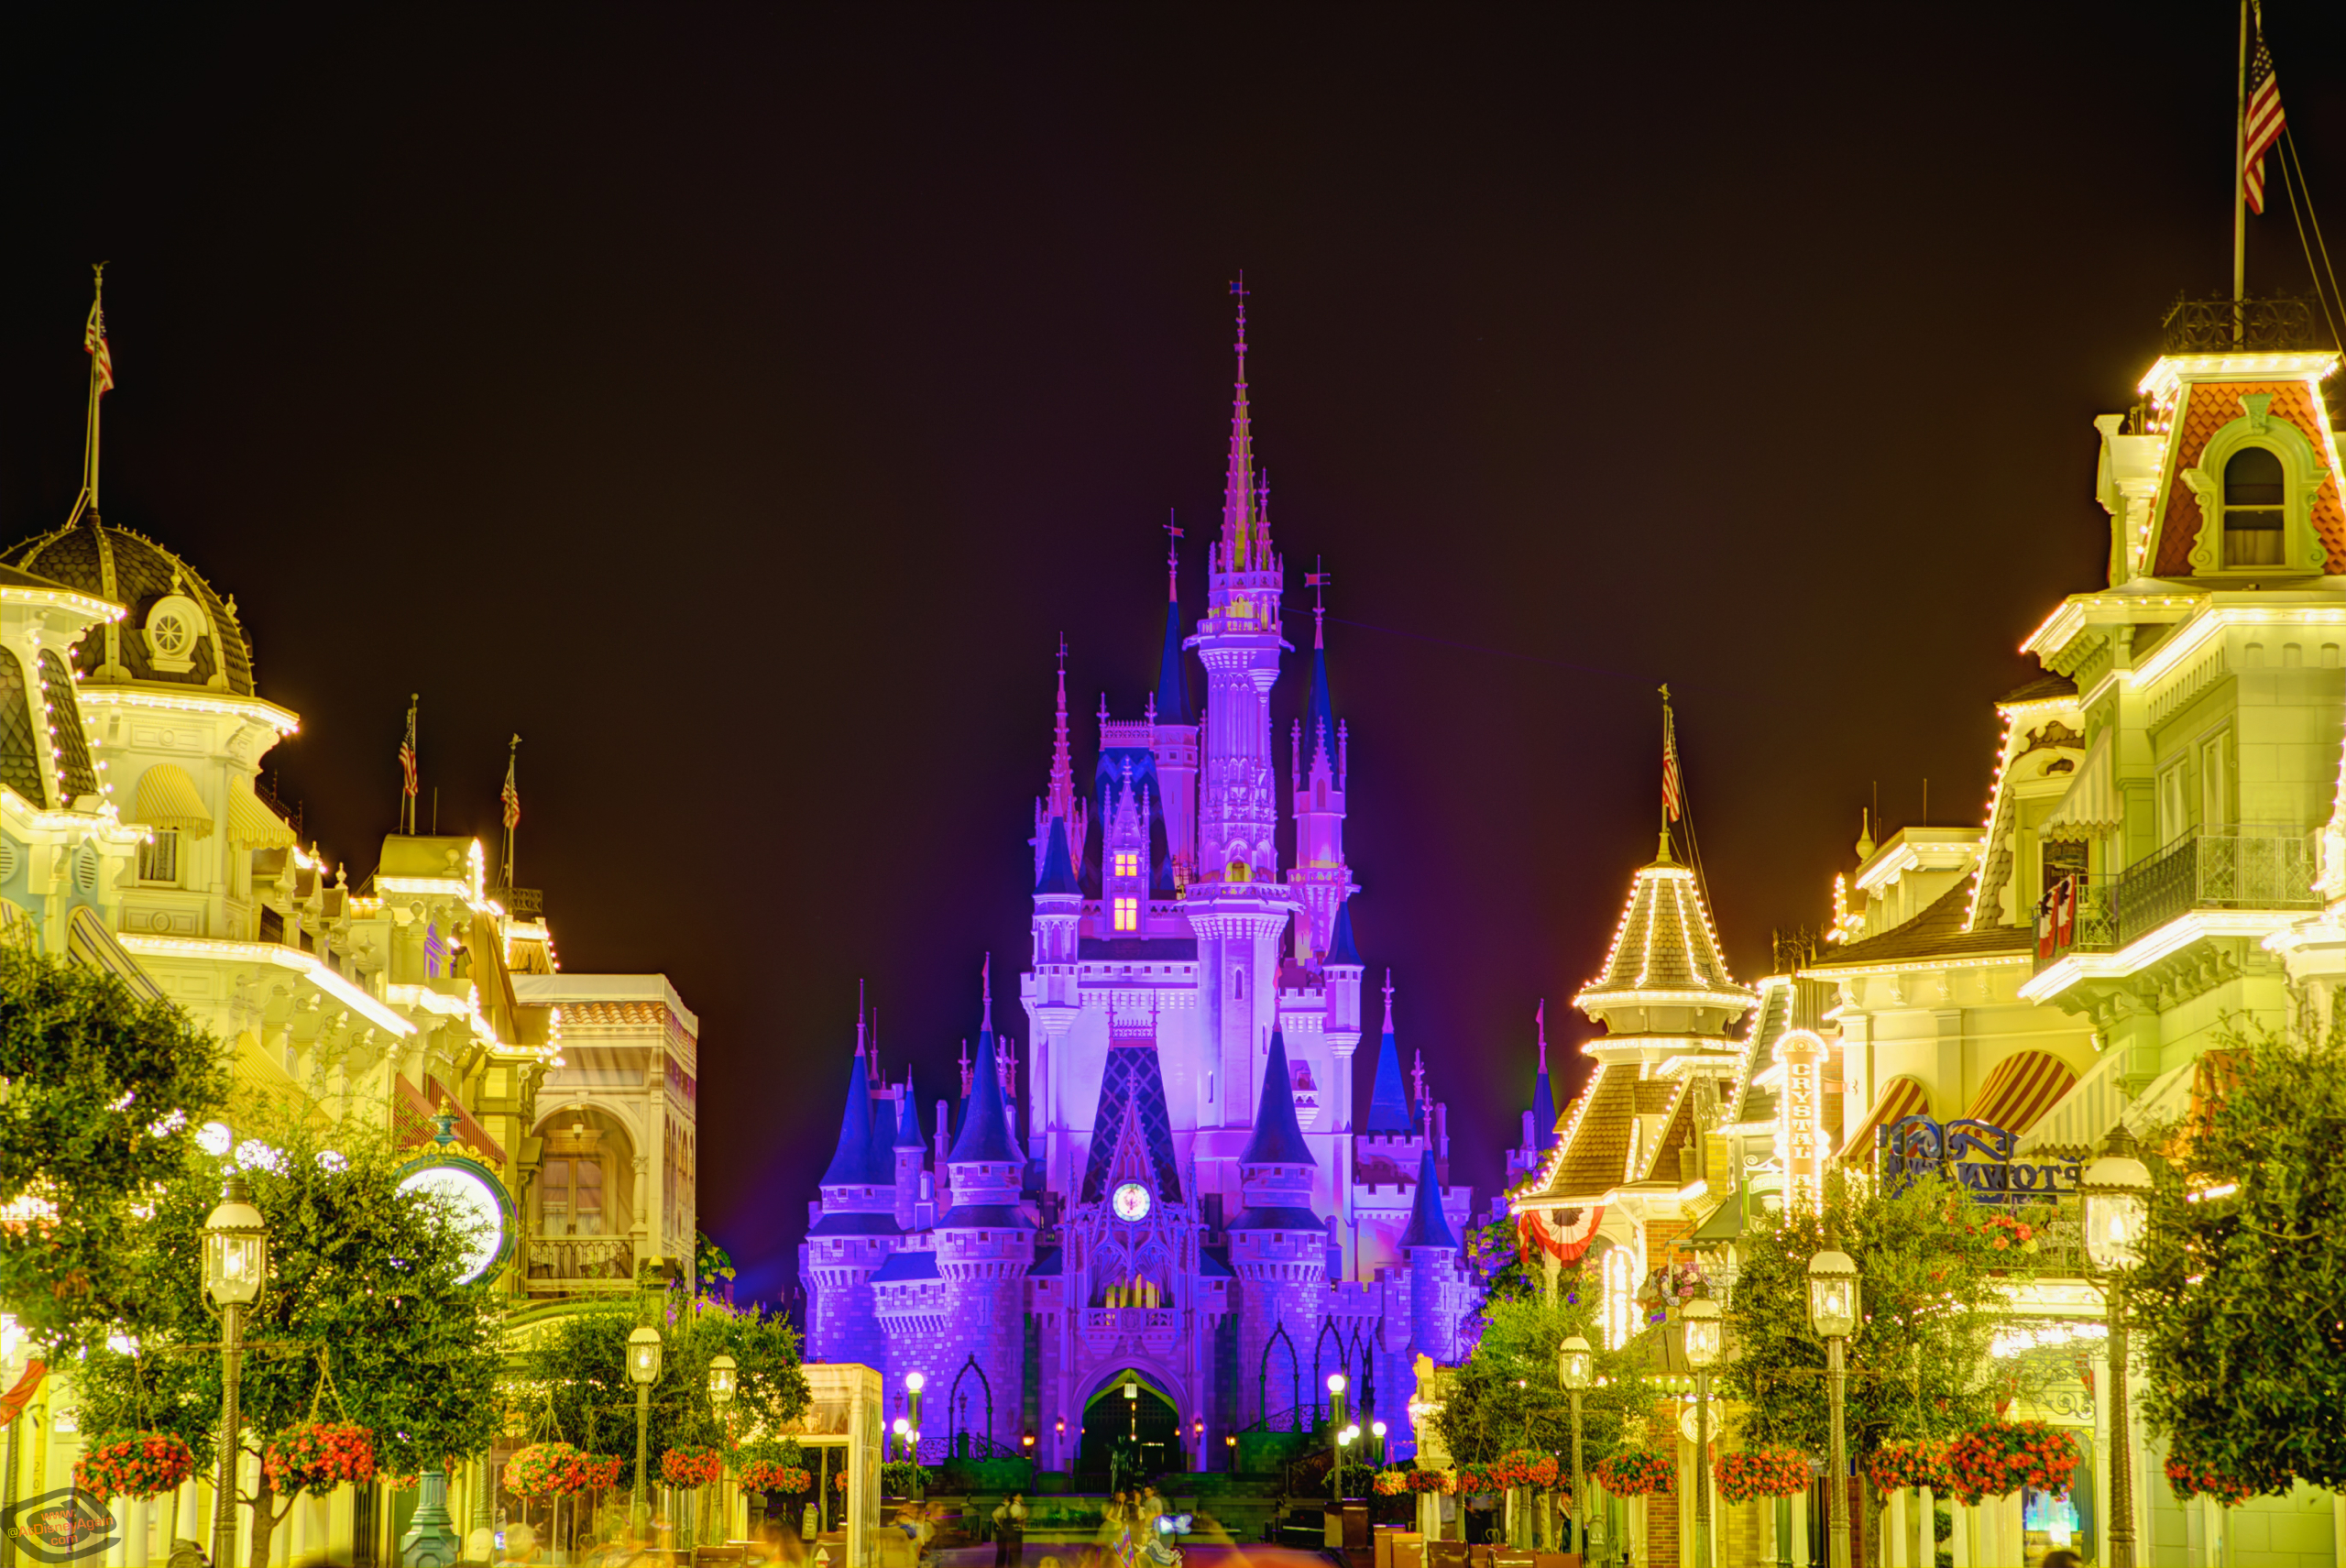 Cinderella Castle Wallpapers AtDisneyAgain 2560x1711